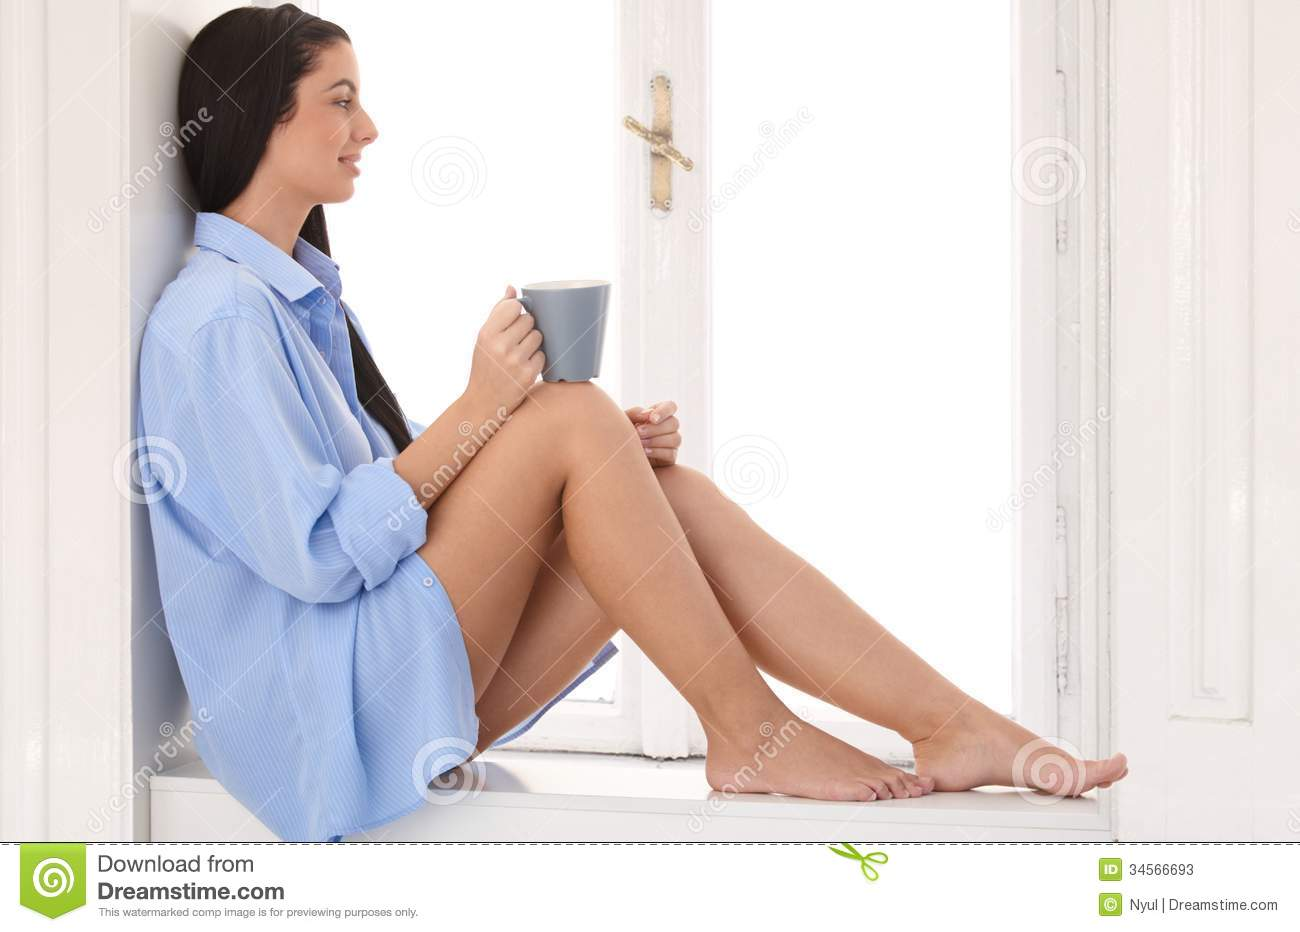 daydreaming woman sitting at window sill stock image